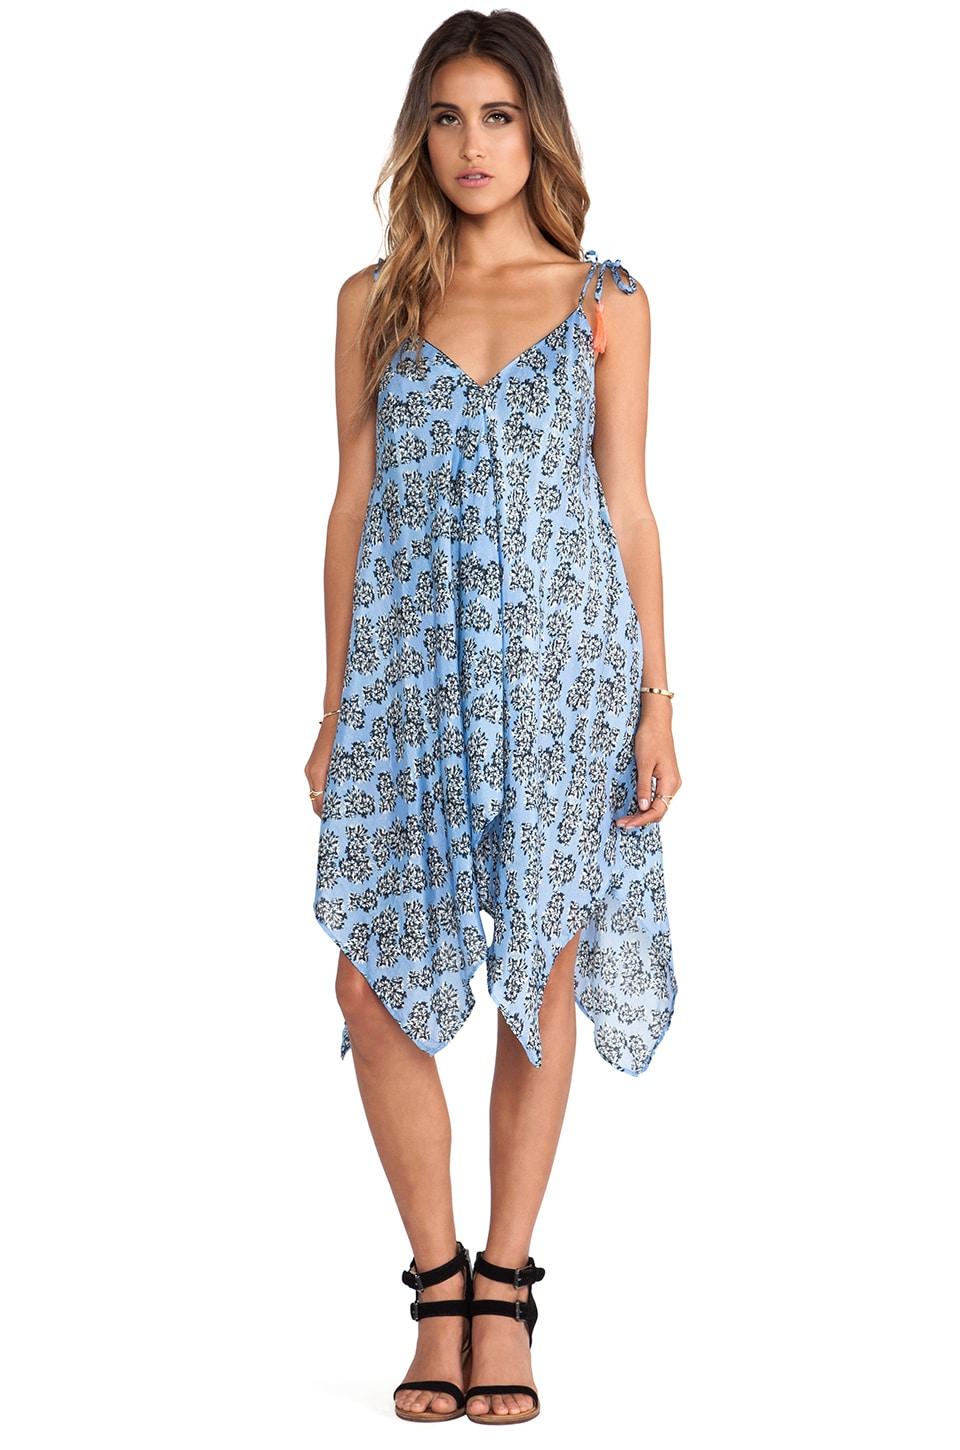 Basta Surf Santorini Dress in Graphic Flower